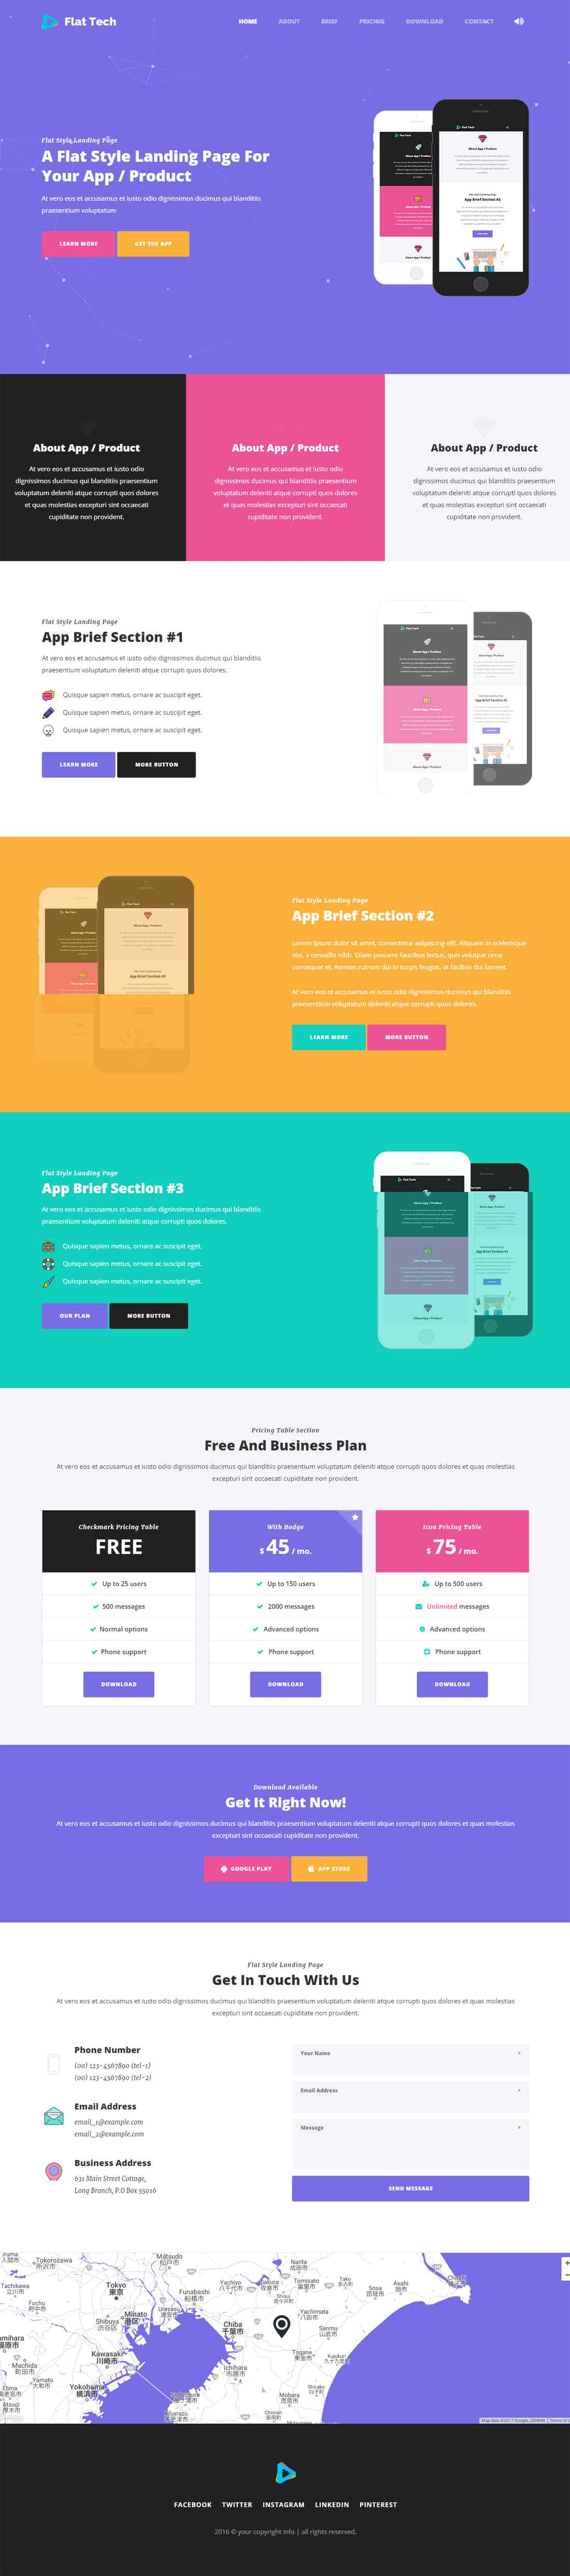 Flat Tech – Flat One Page App Landing Page Template